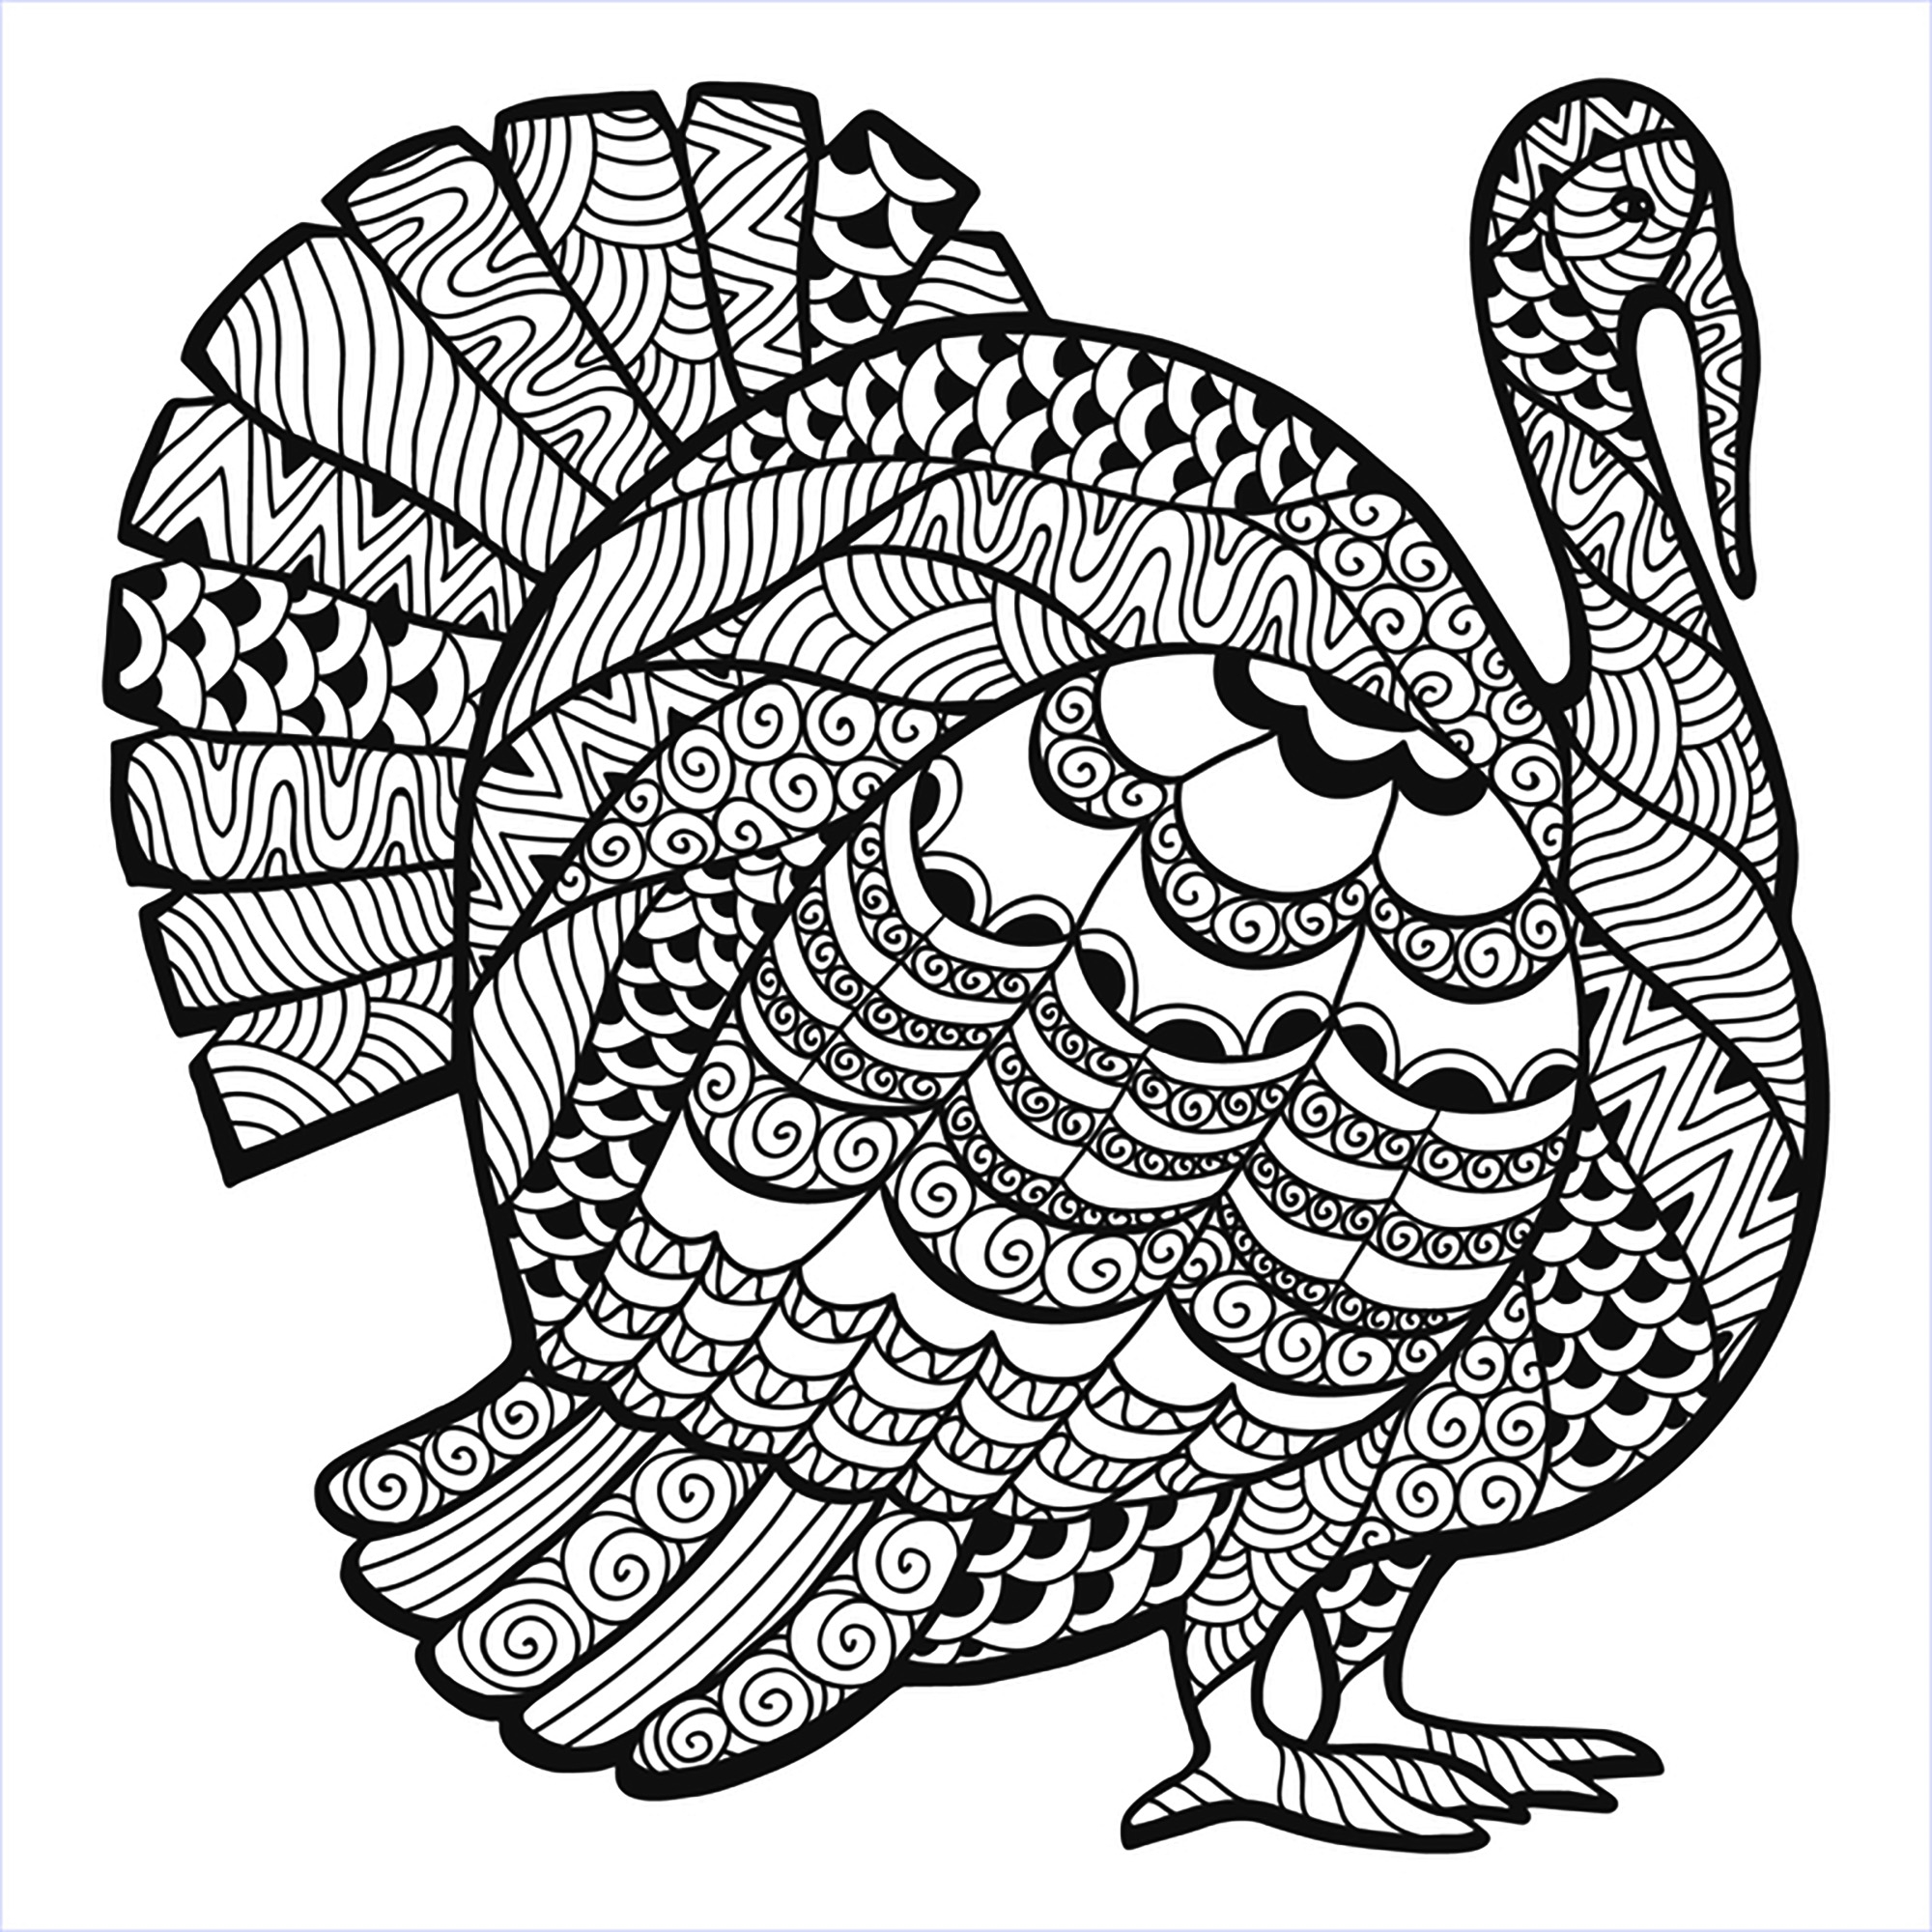 2000x2000 Coloring Book Free Printable Thanksgiving Pages Kids View R